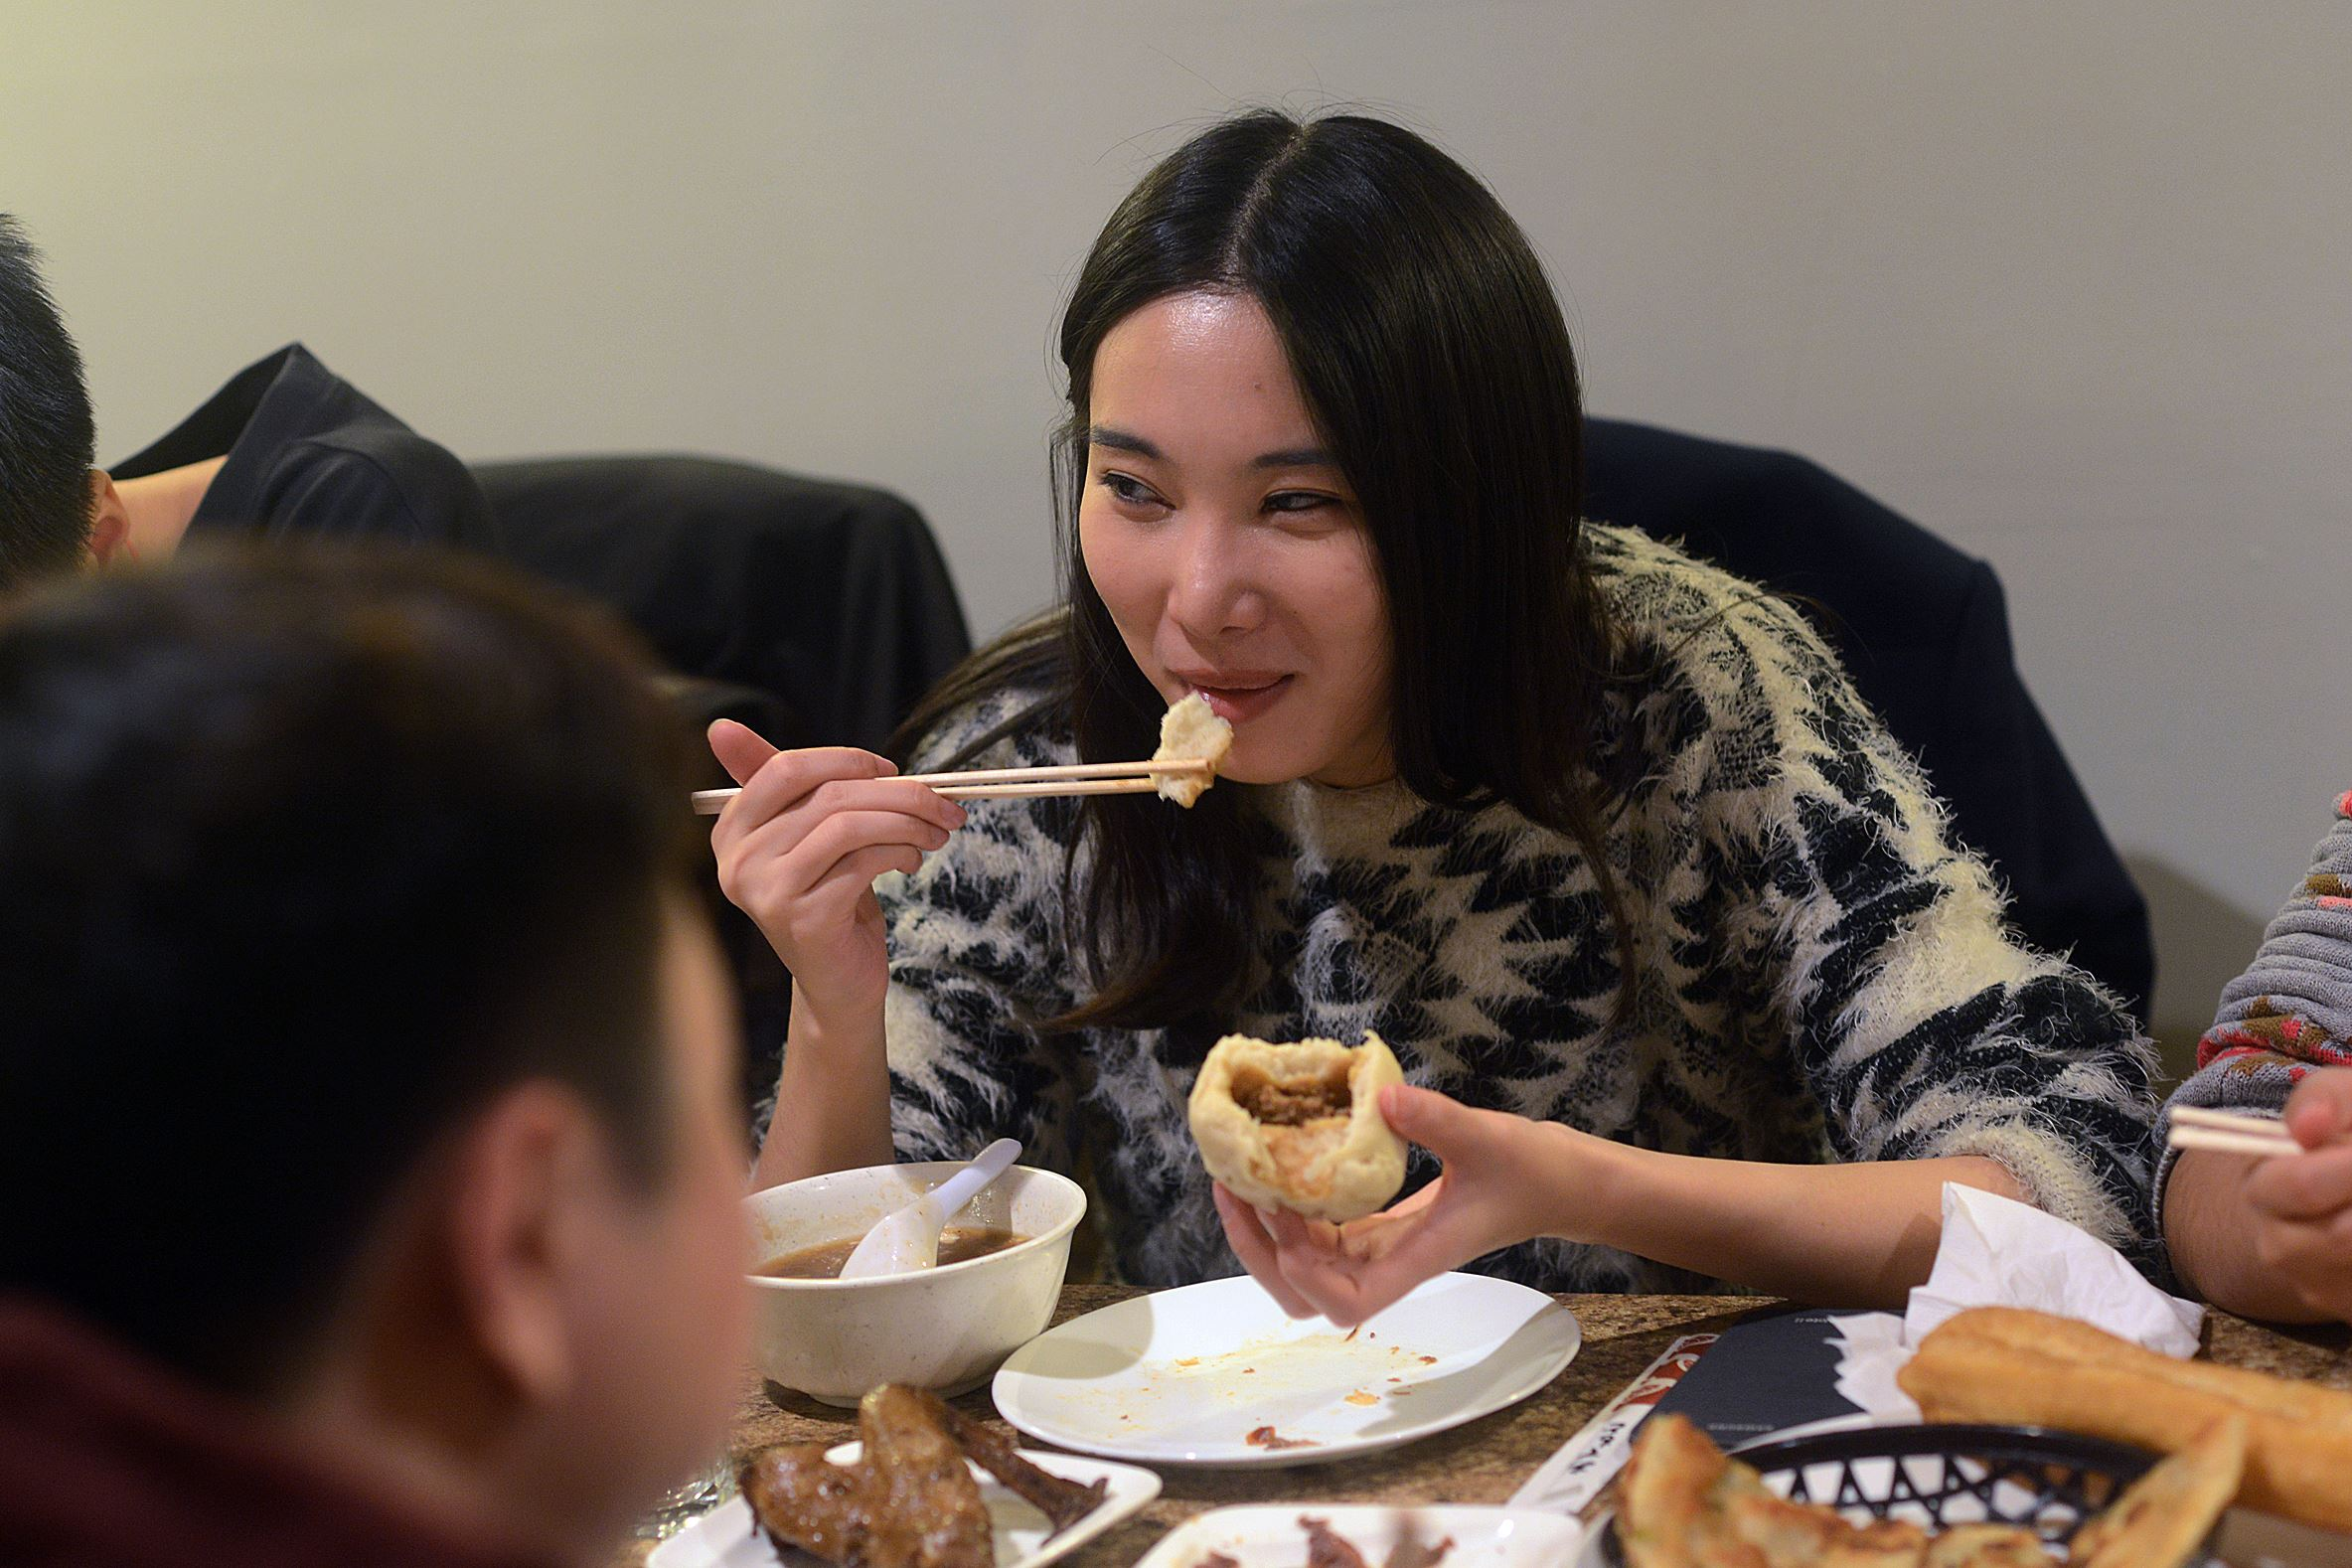 Chinese New Year food Di Zhang, center, eats a steamed bun at breakfast at Sakura, in Squirrel Hill.